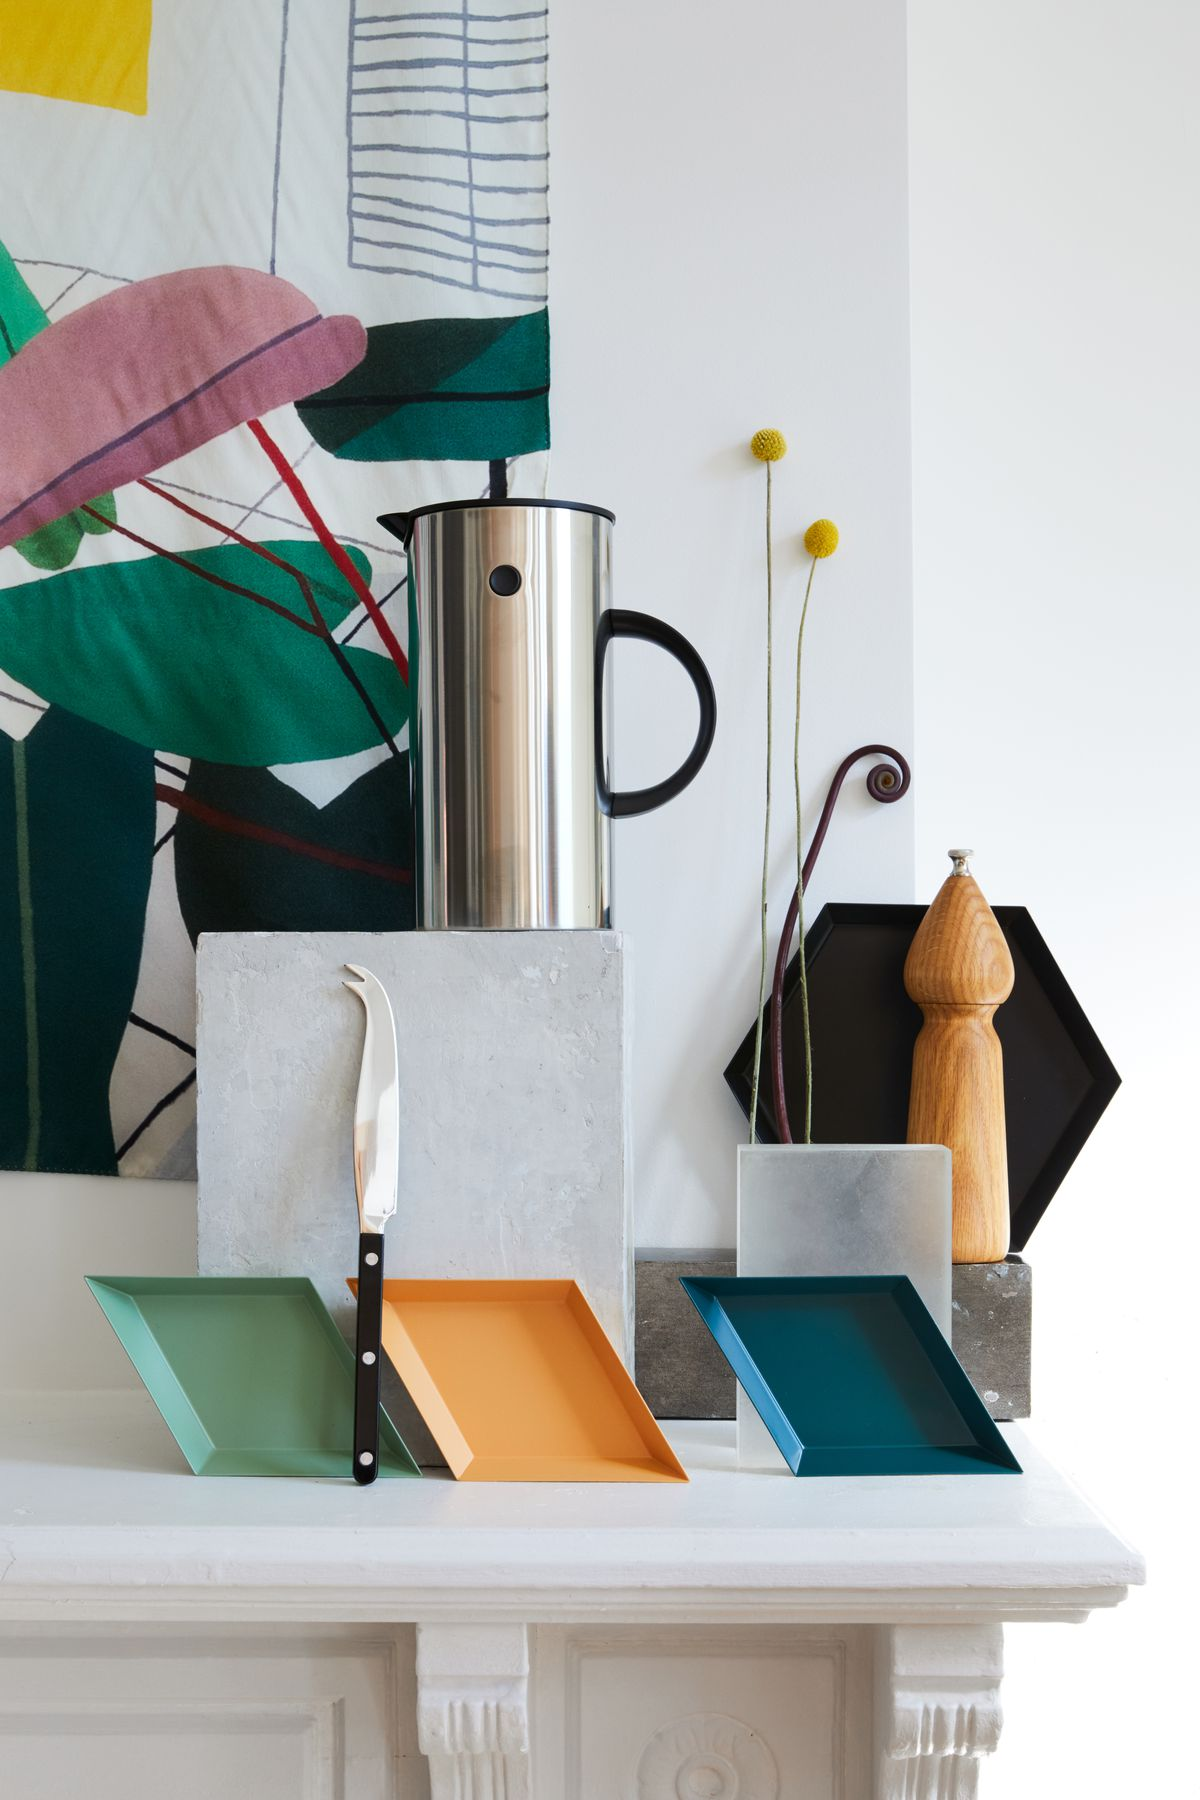 A coffee maker, serving trays, and other kitchen accessories.